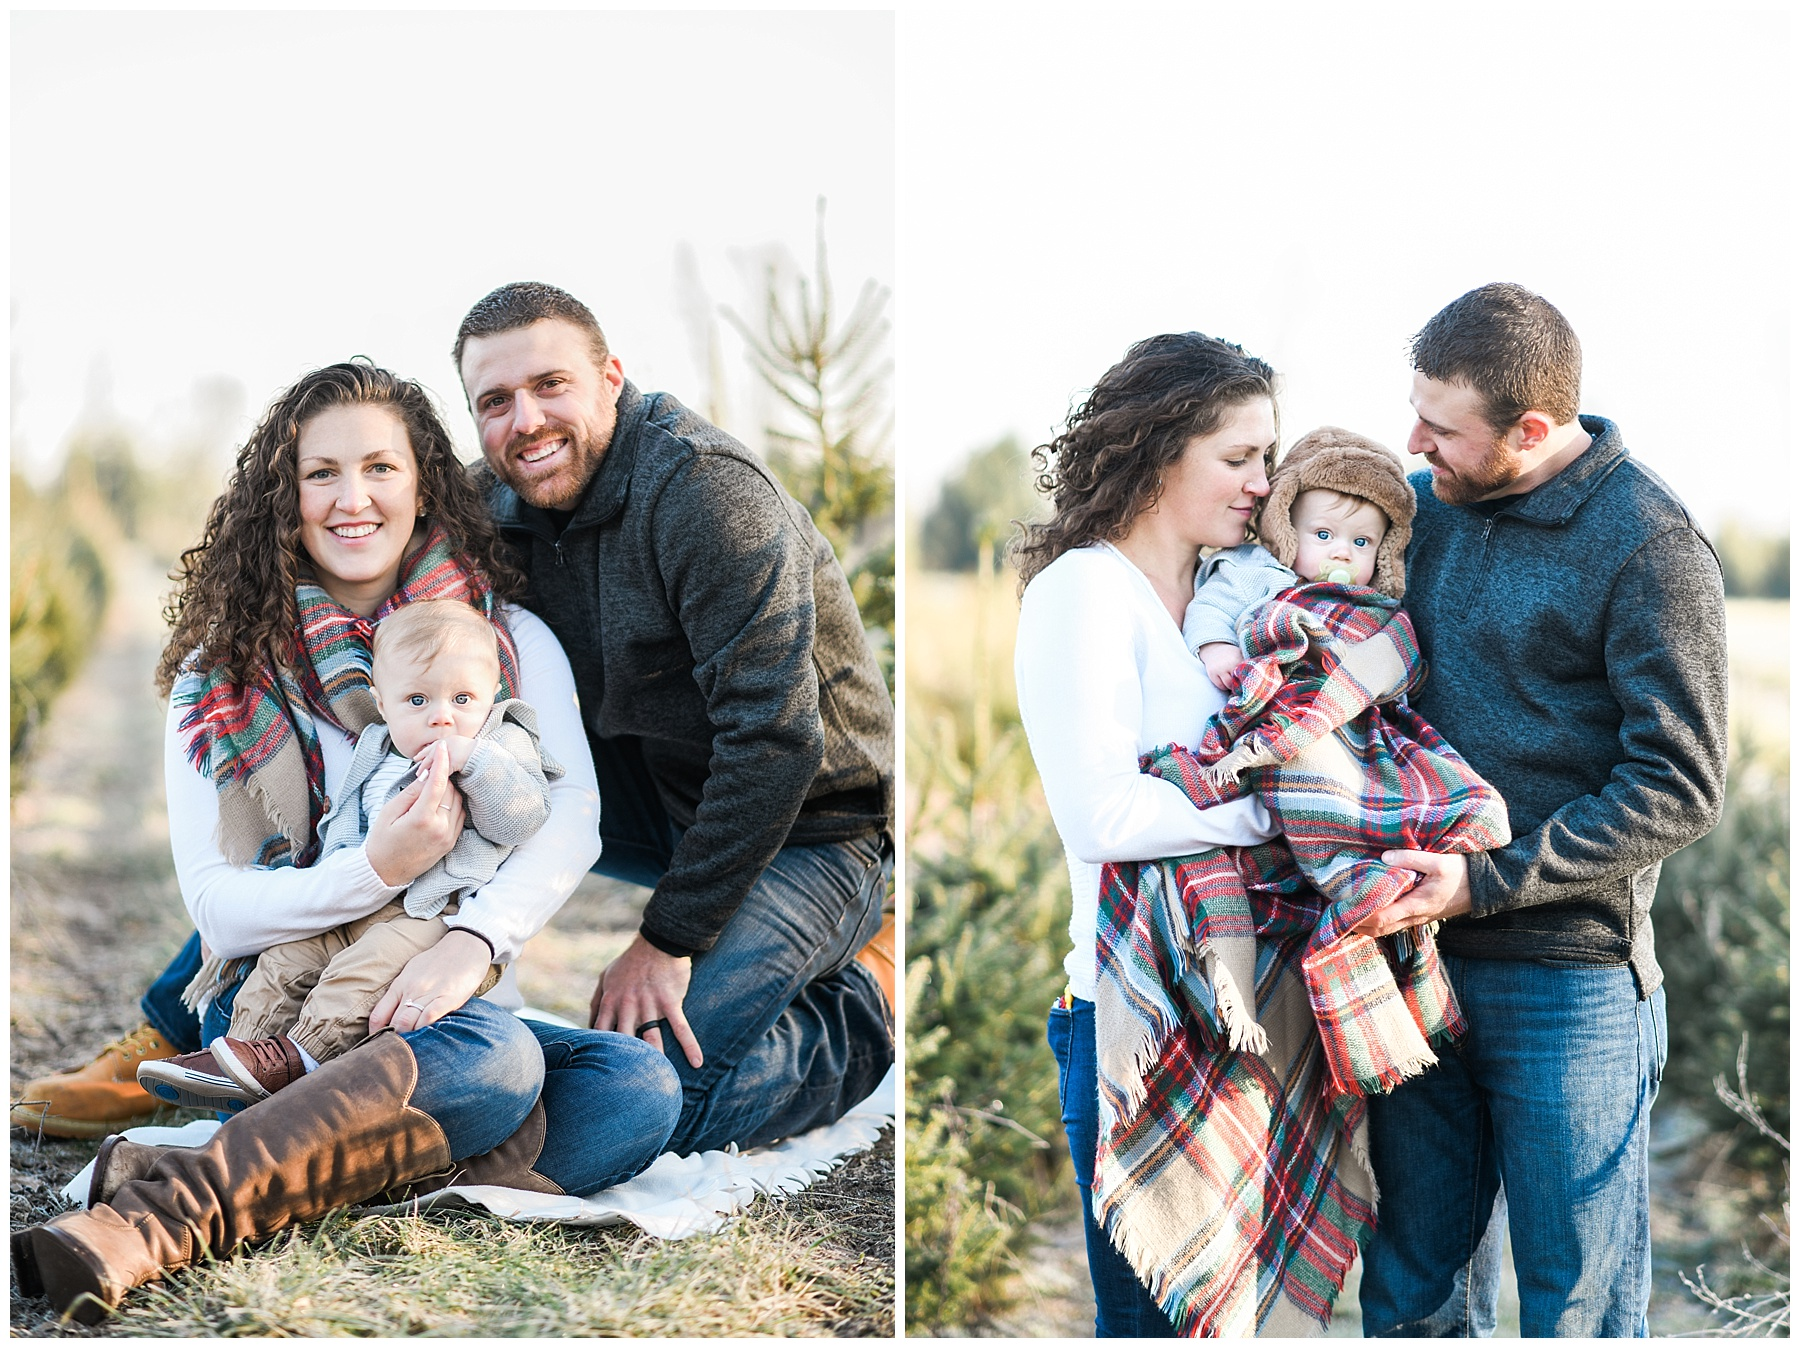 bucks county family photographe-14.jpg